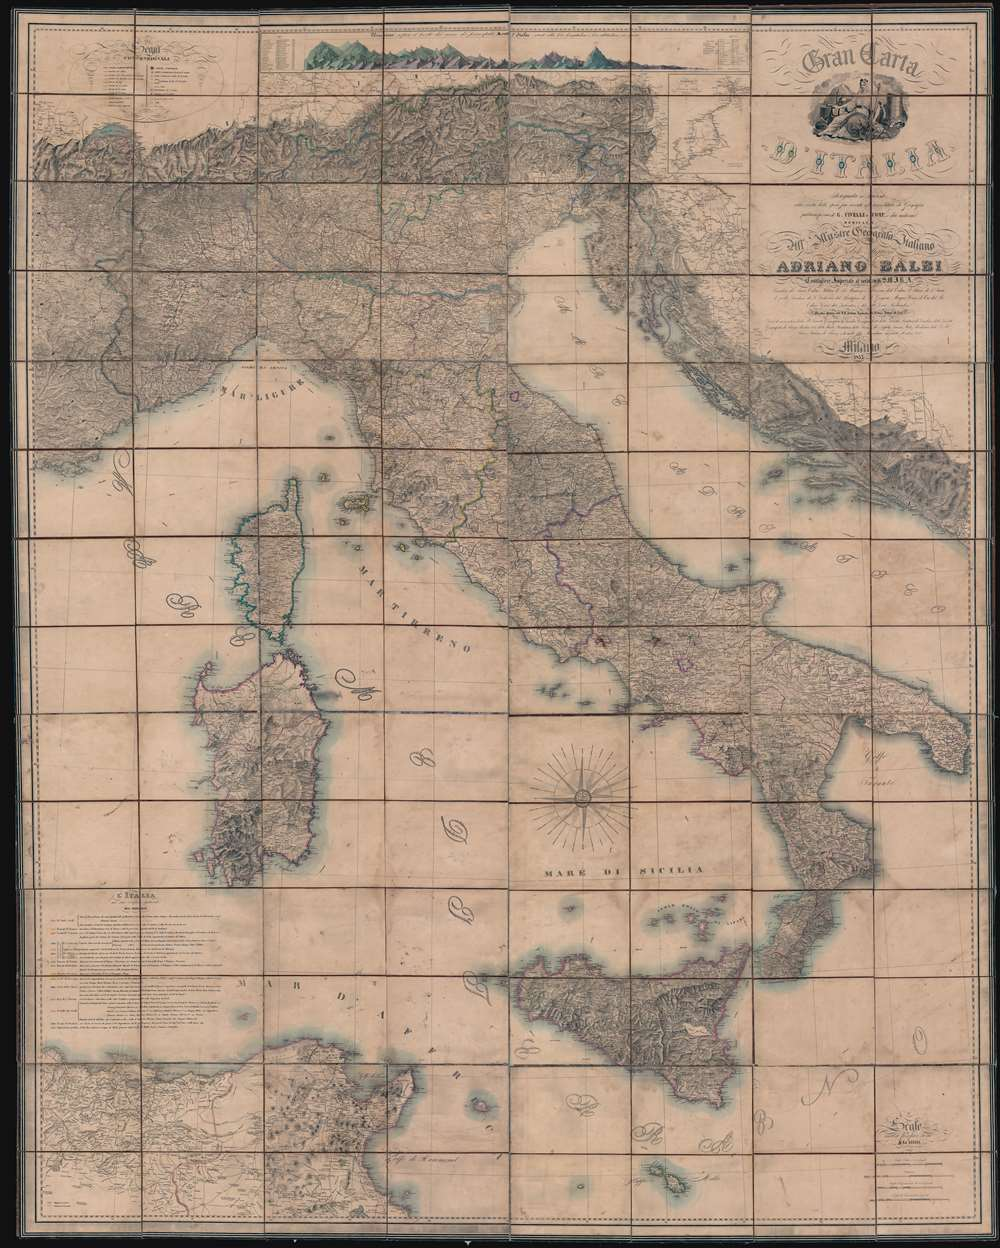 Gran Carta d'Italia. - Main View